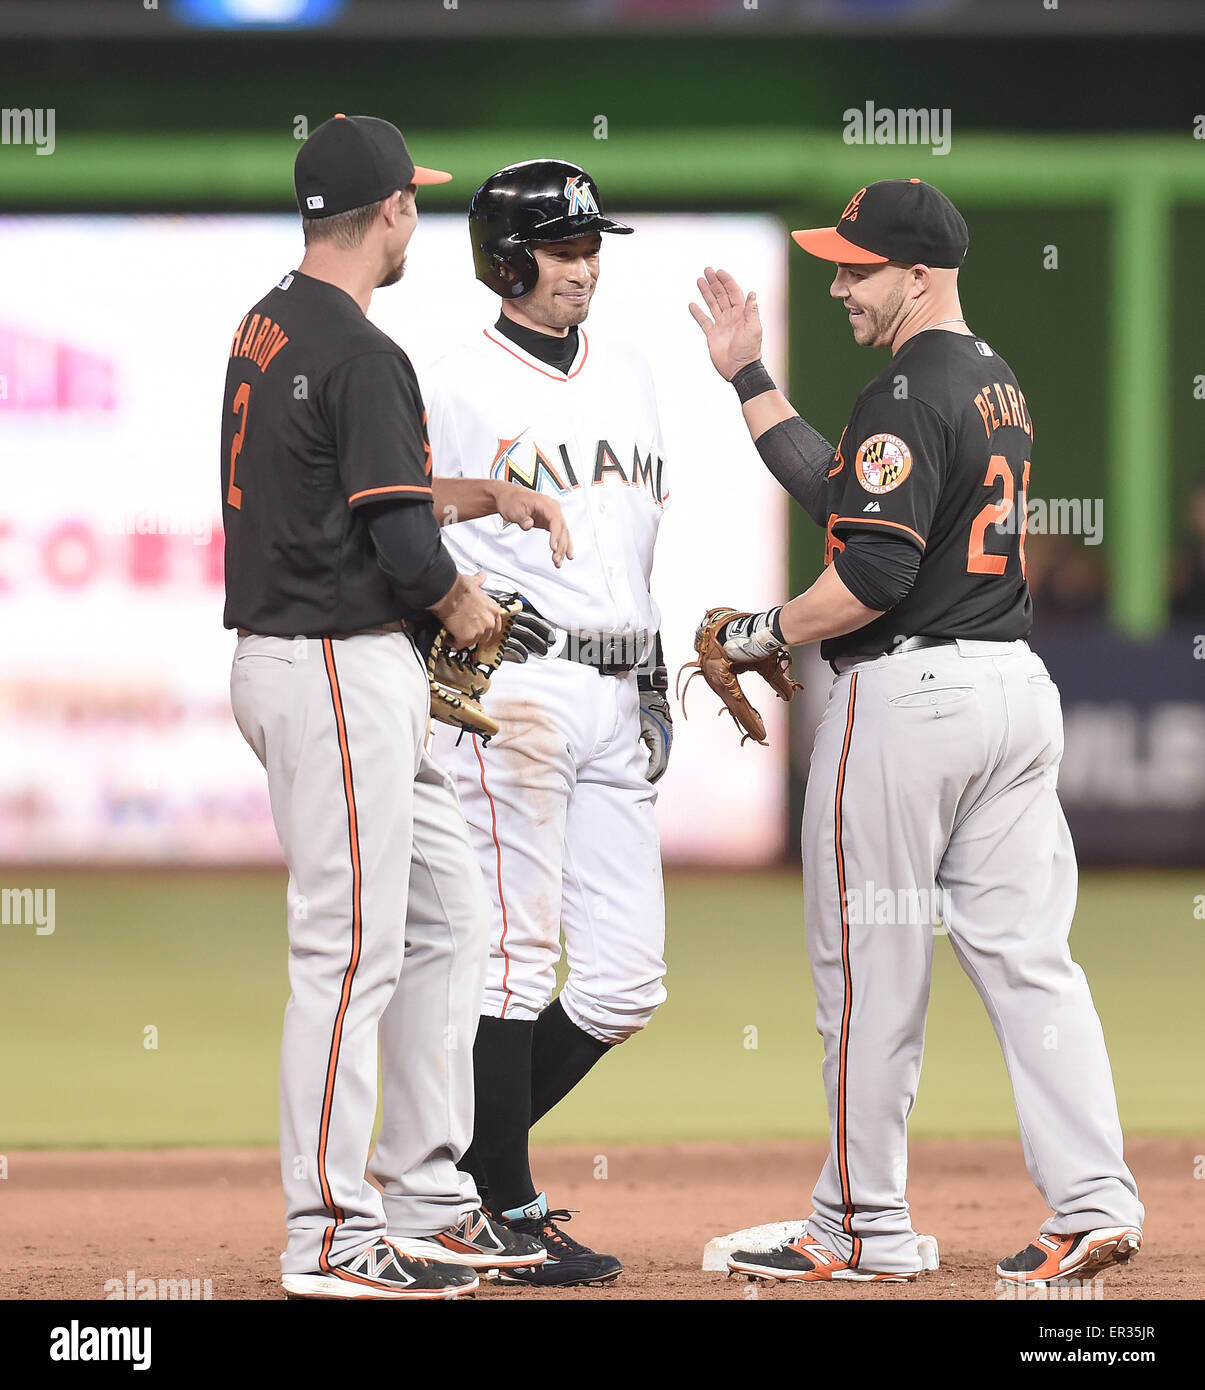 Miami, Florida, USA. 22nd May, 2015. (L-R) J.J. Hardy (Orioles), Ichiro Suzuki (Marlins), Steve Pearce (Orioles) - Stock Image